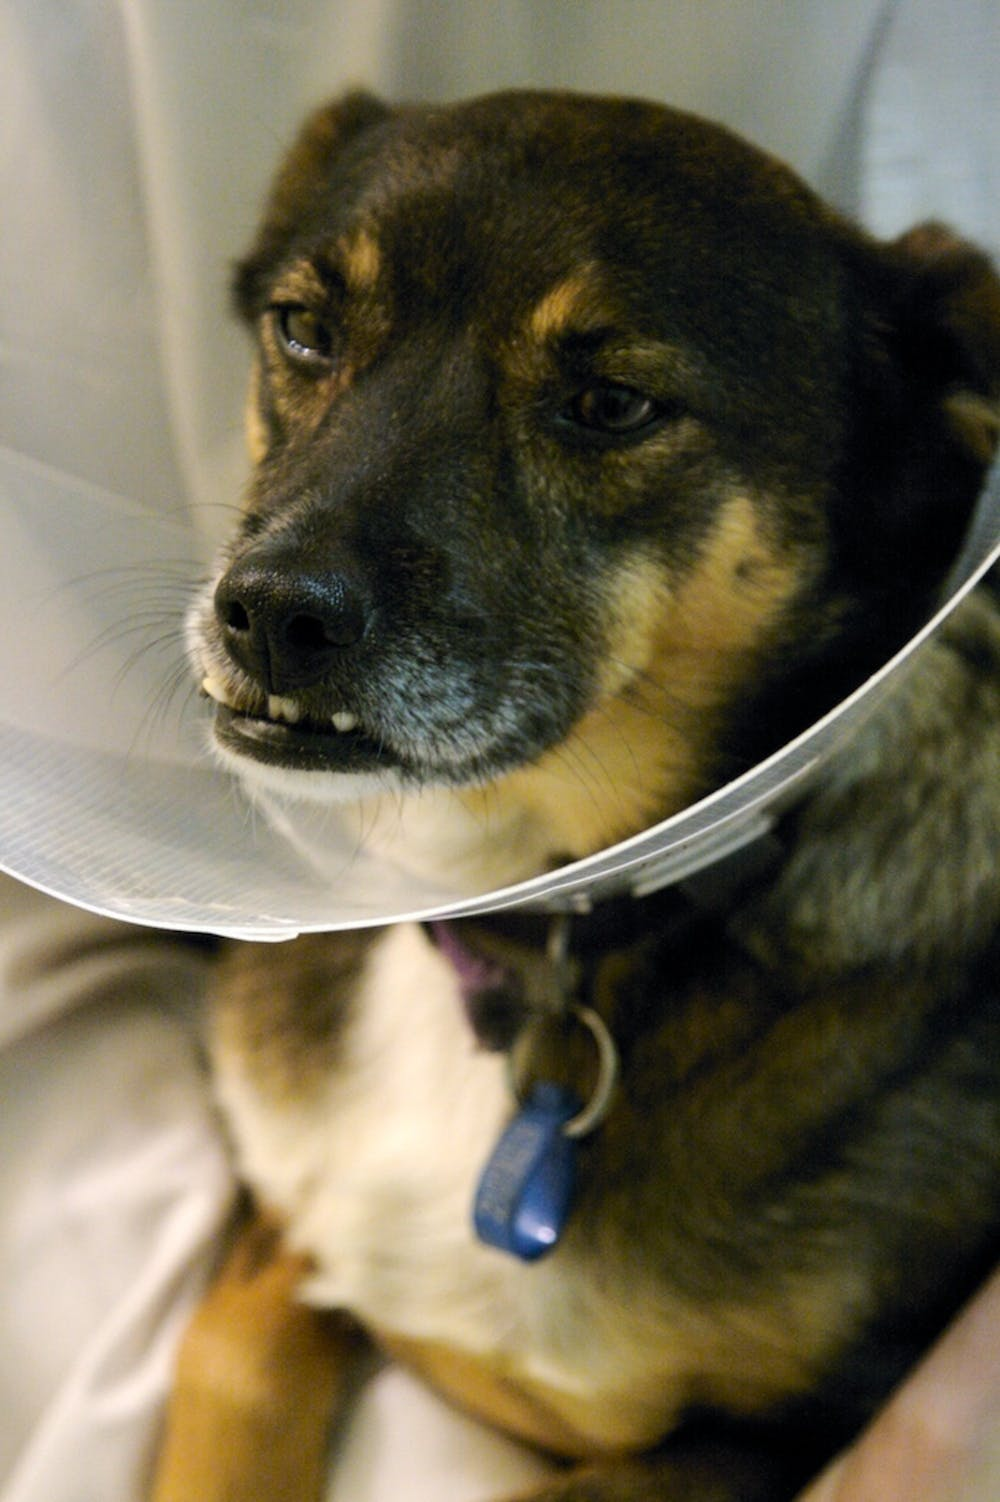 Why the low hygiene standards between vets and pets?